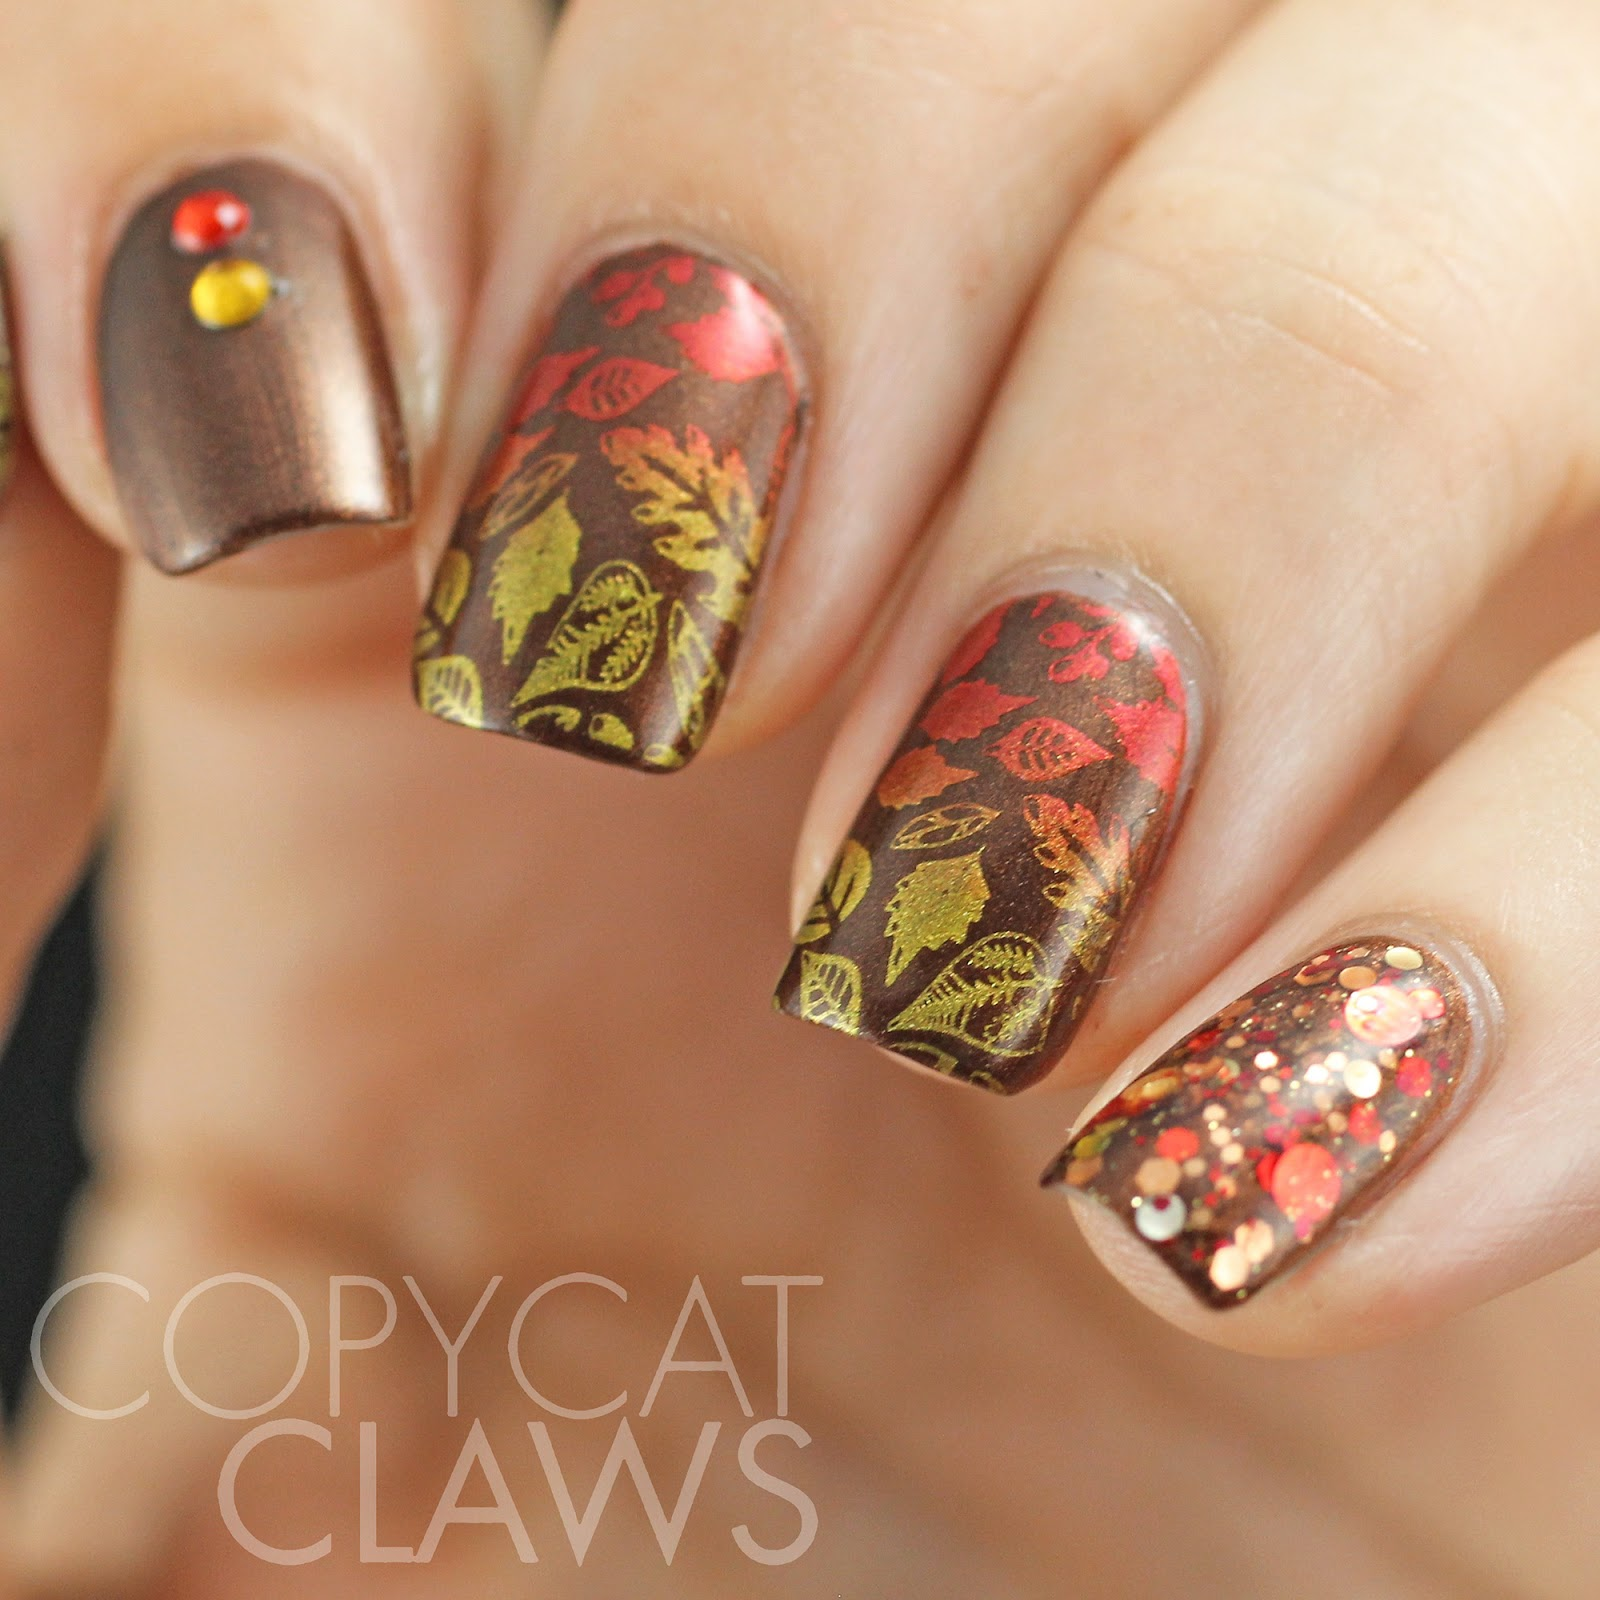 Copycat Claws: Sunday Stamping - Fall Nails 2015